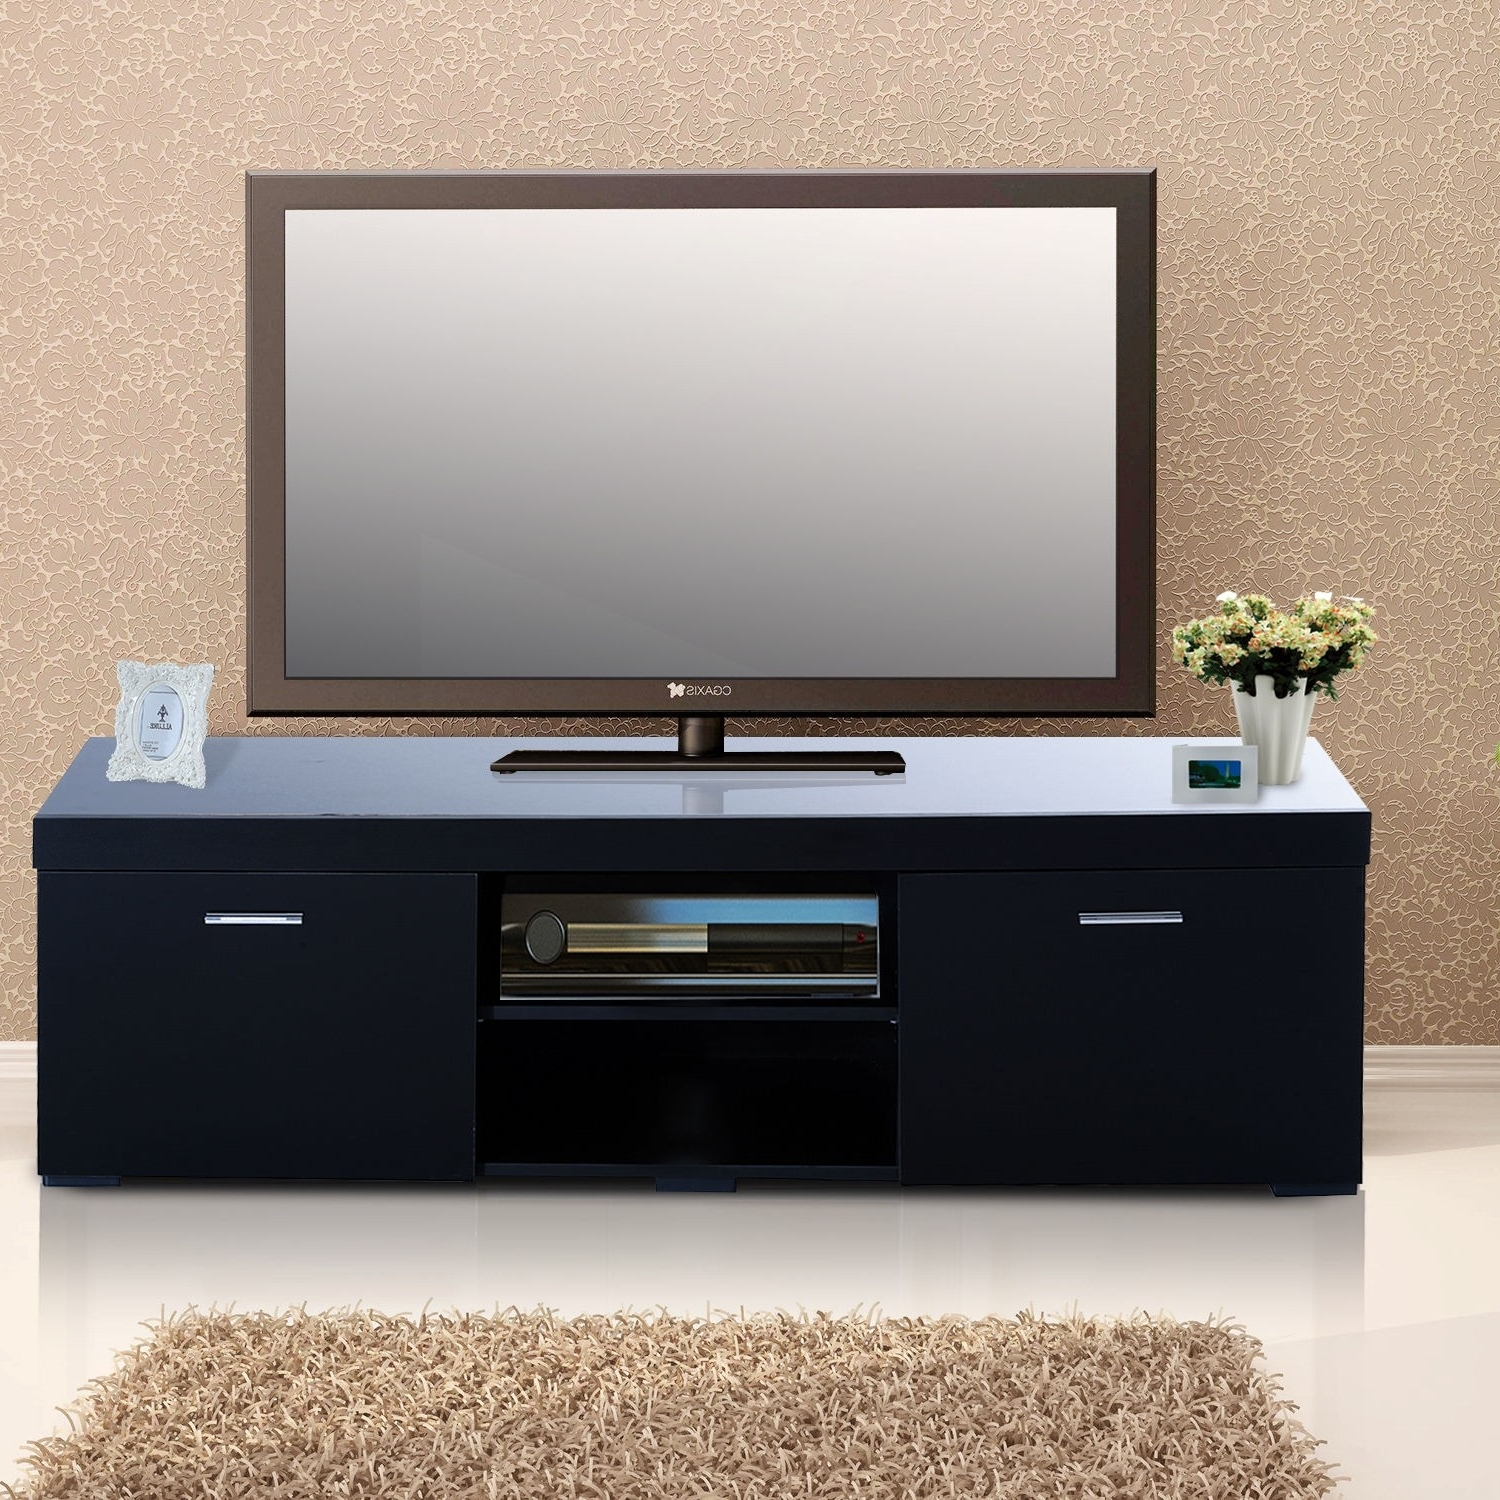 Radiator Cover Tv Stand With Regard To Well Known Homcom 2 Tier Tv Stand, 140lx40wx44h Cm Black (View 11 of 15)